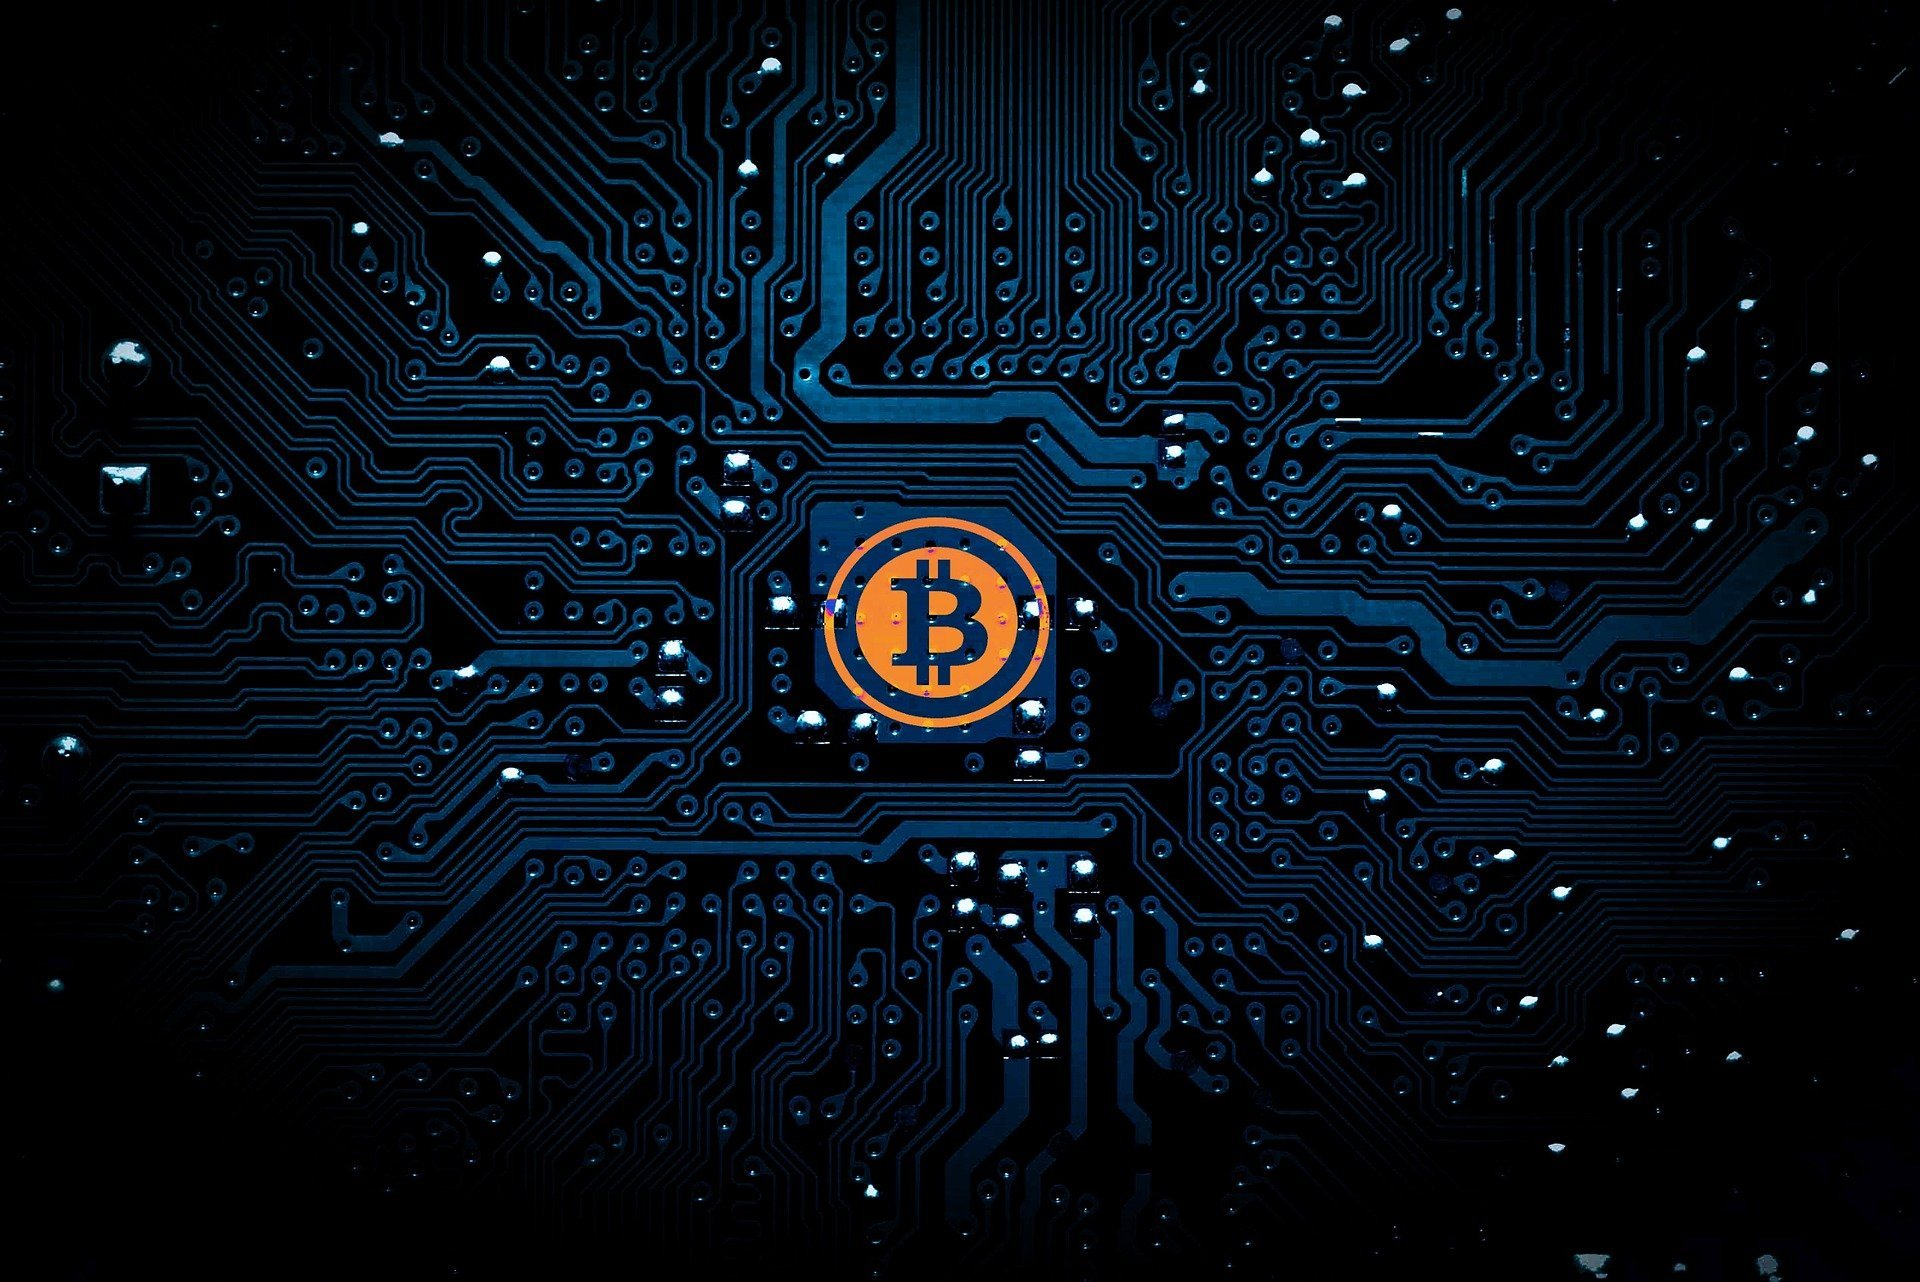 Bitcoin Projected to Grow Faster Than the Internet, Says On-Chain Analyst